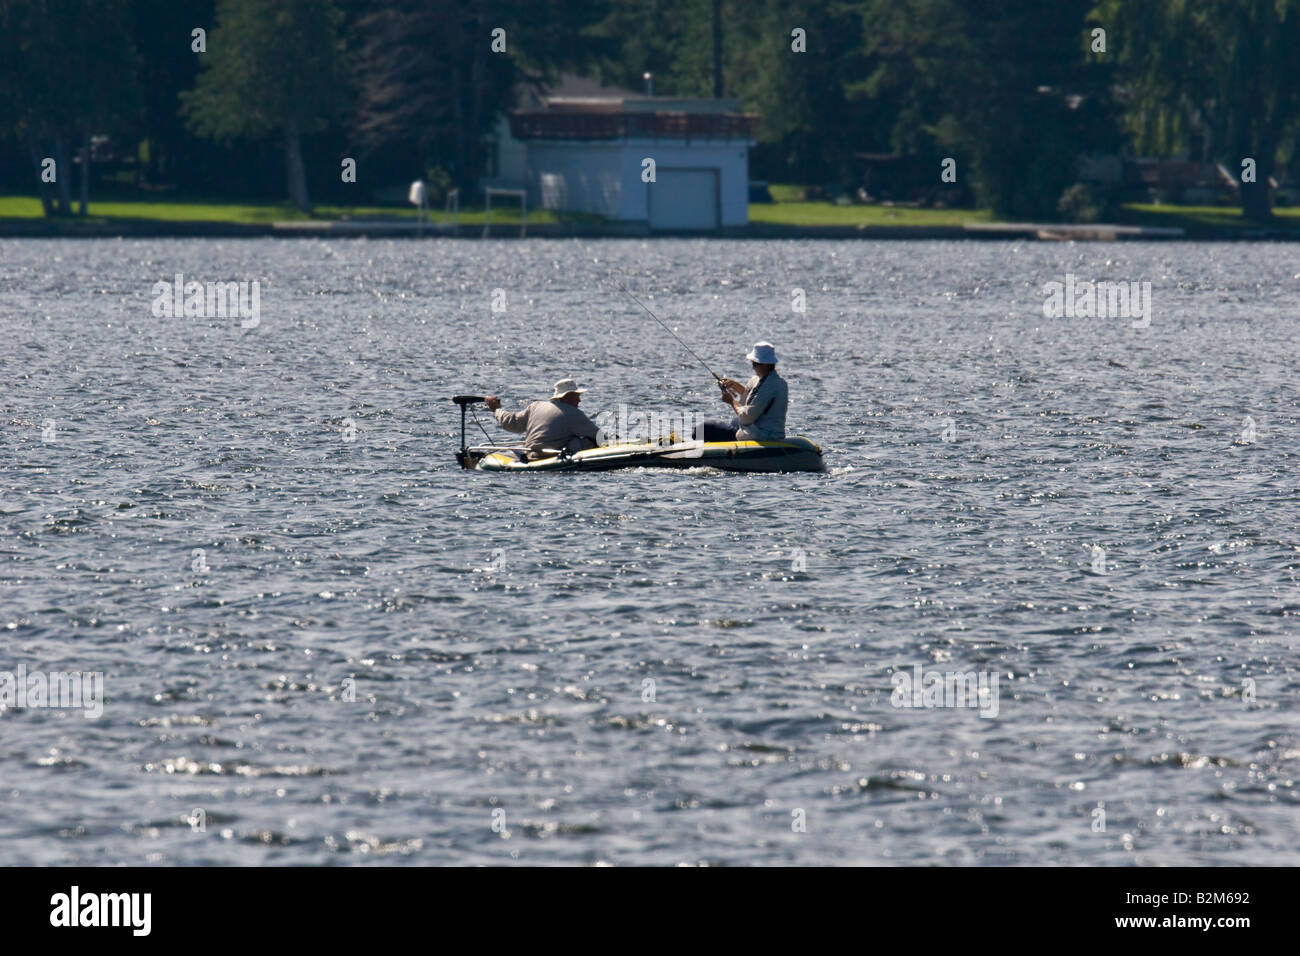 Fishing and boating in cottage country - Stock Image